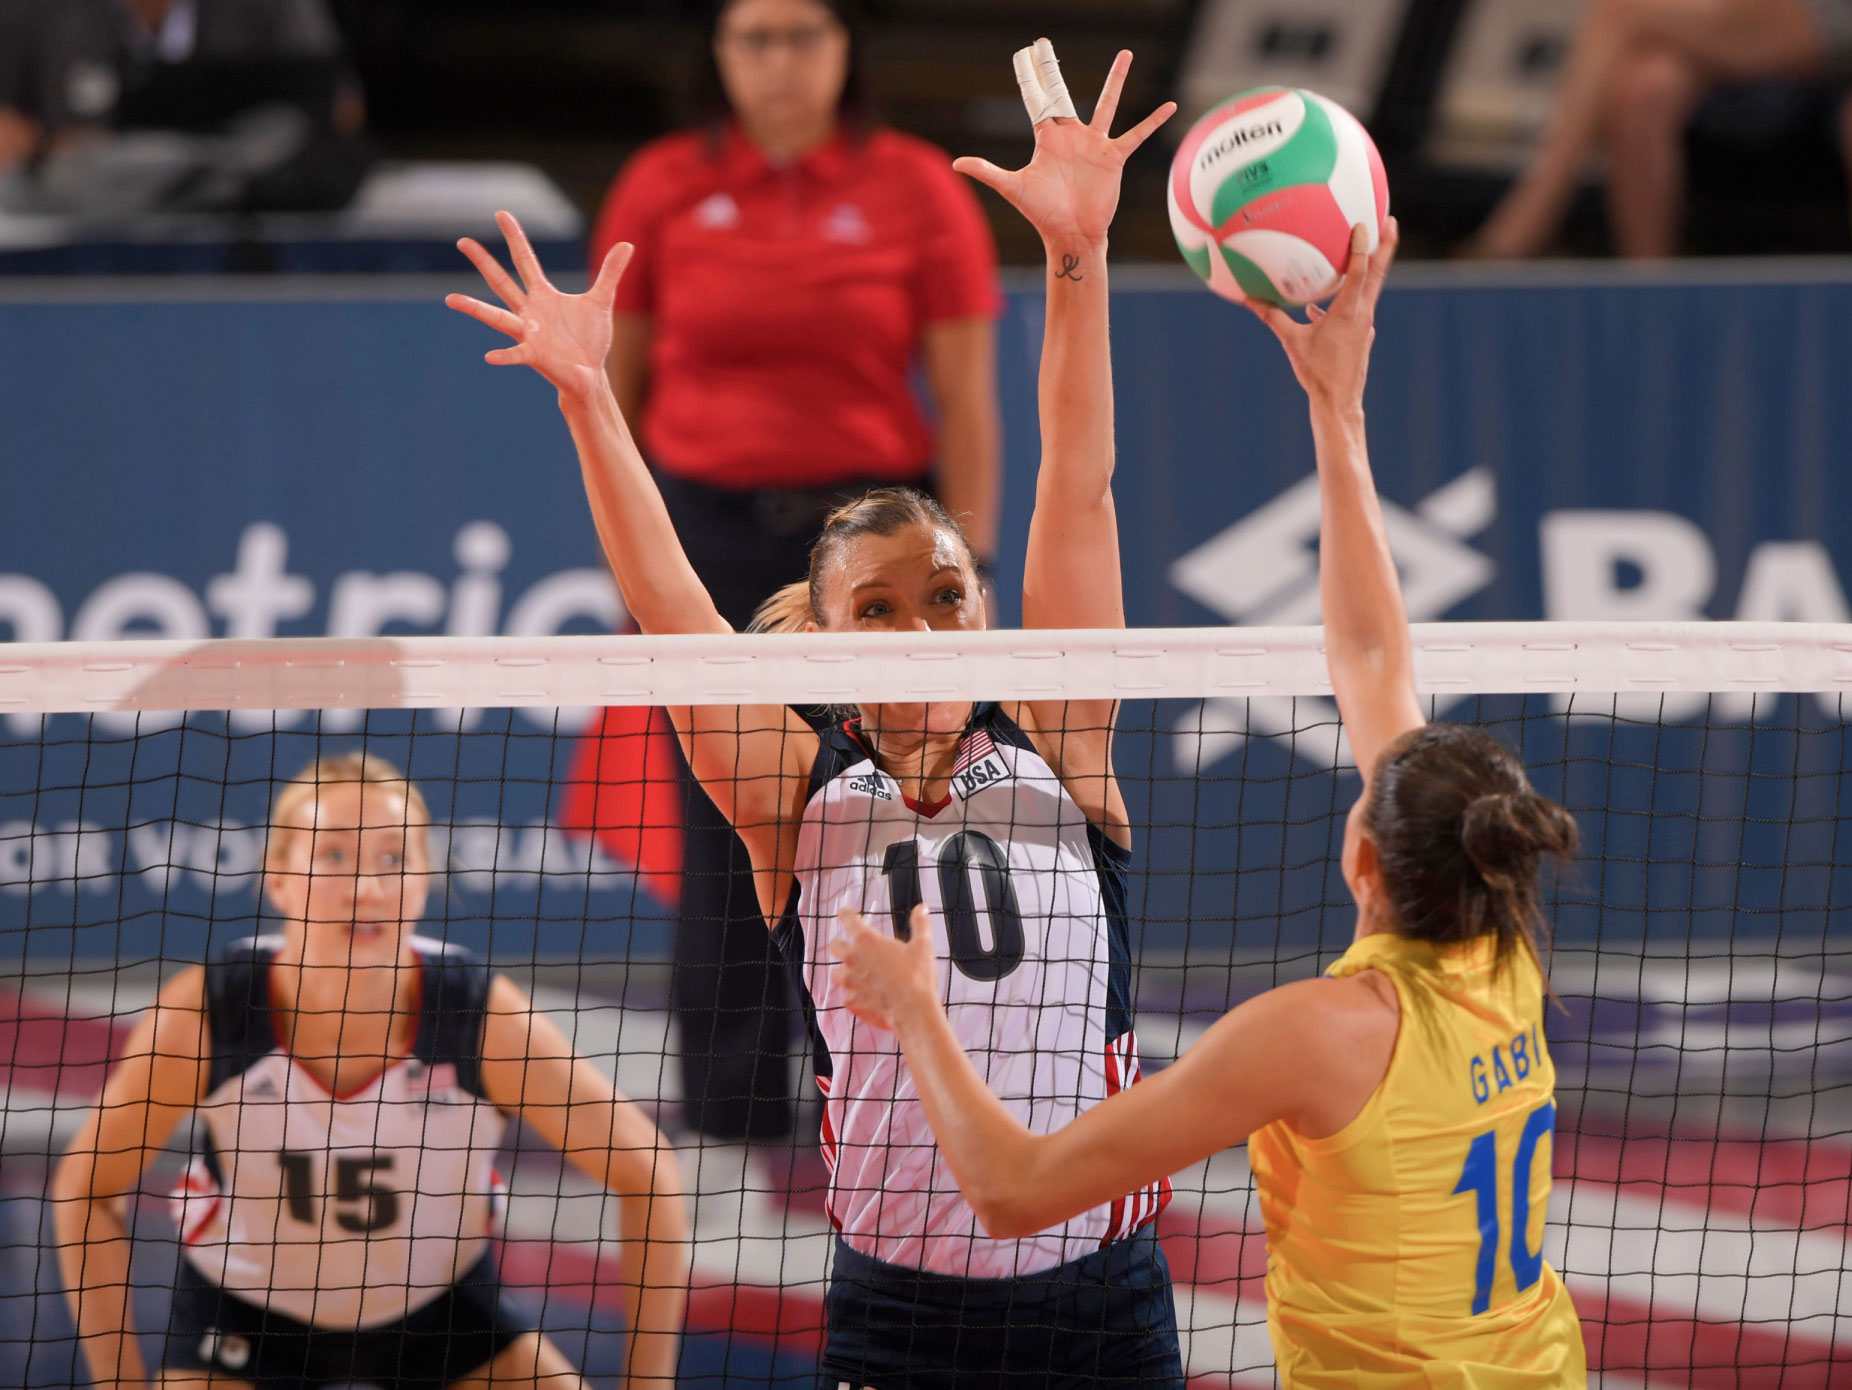 volleyball player jordan larson blocking at net